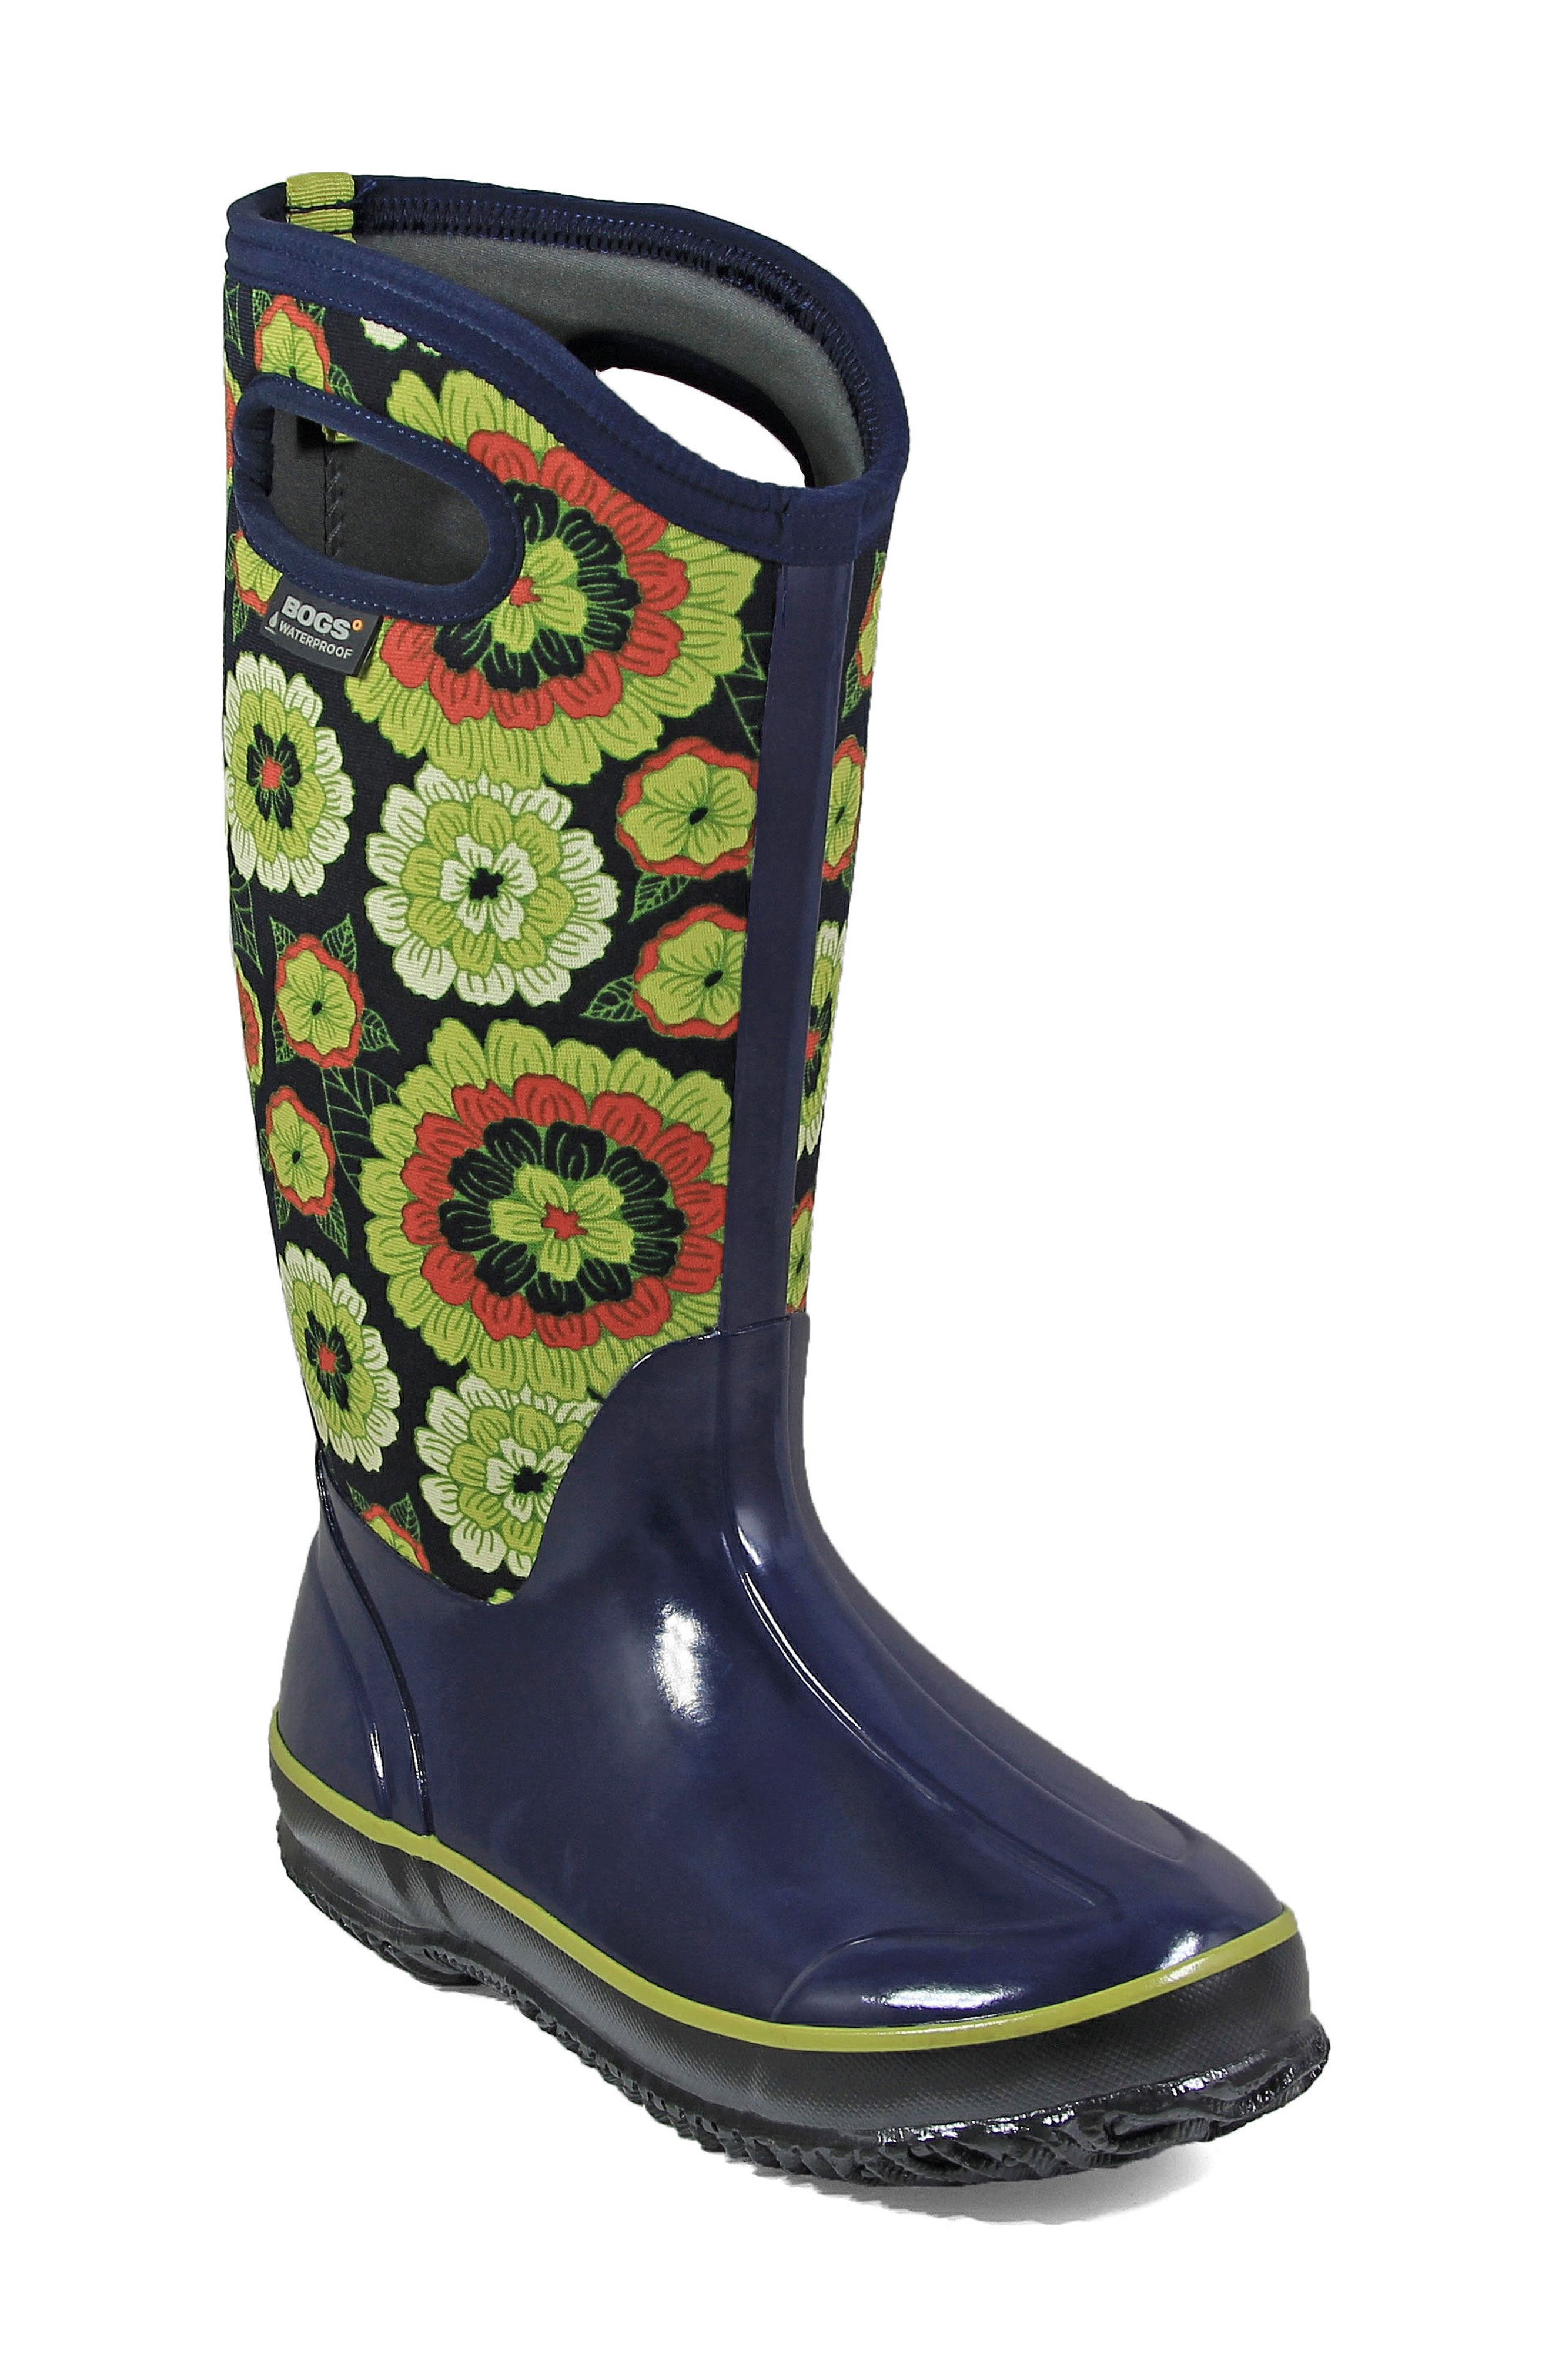 Alternate Image 1 Selected - Bogs Classic Pansies Waterproof Insulated Boot (Women)